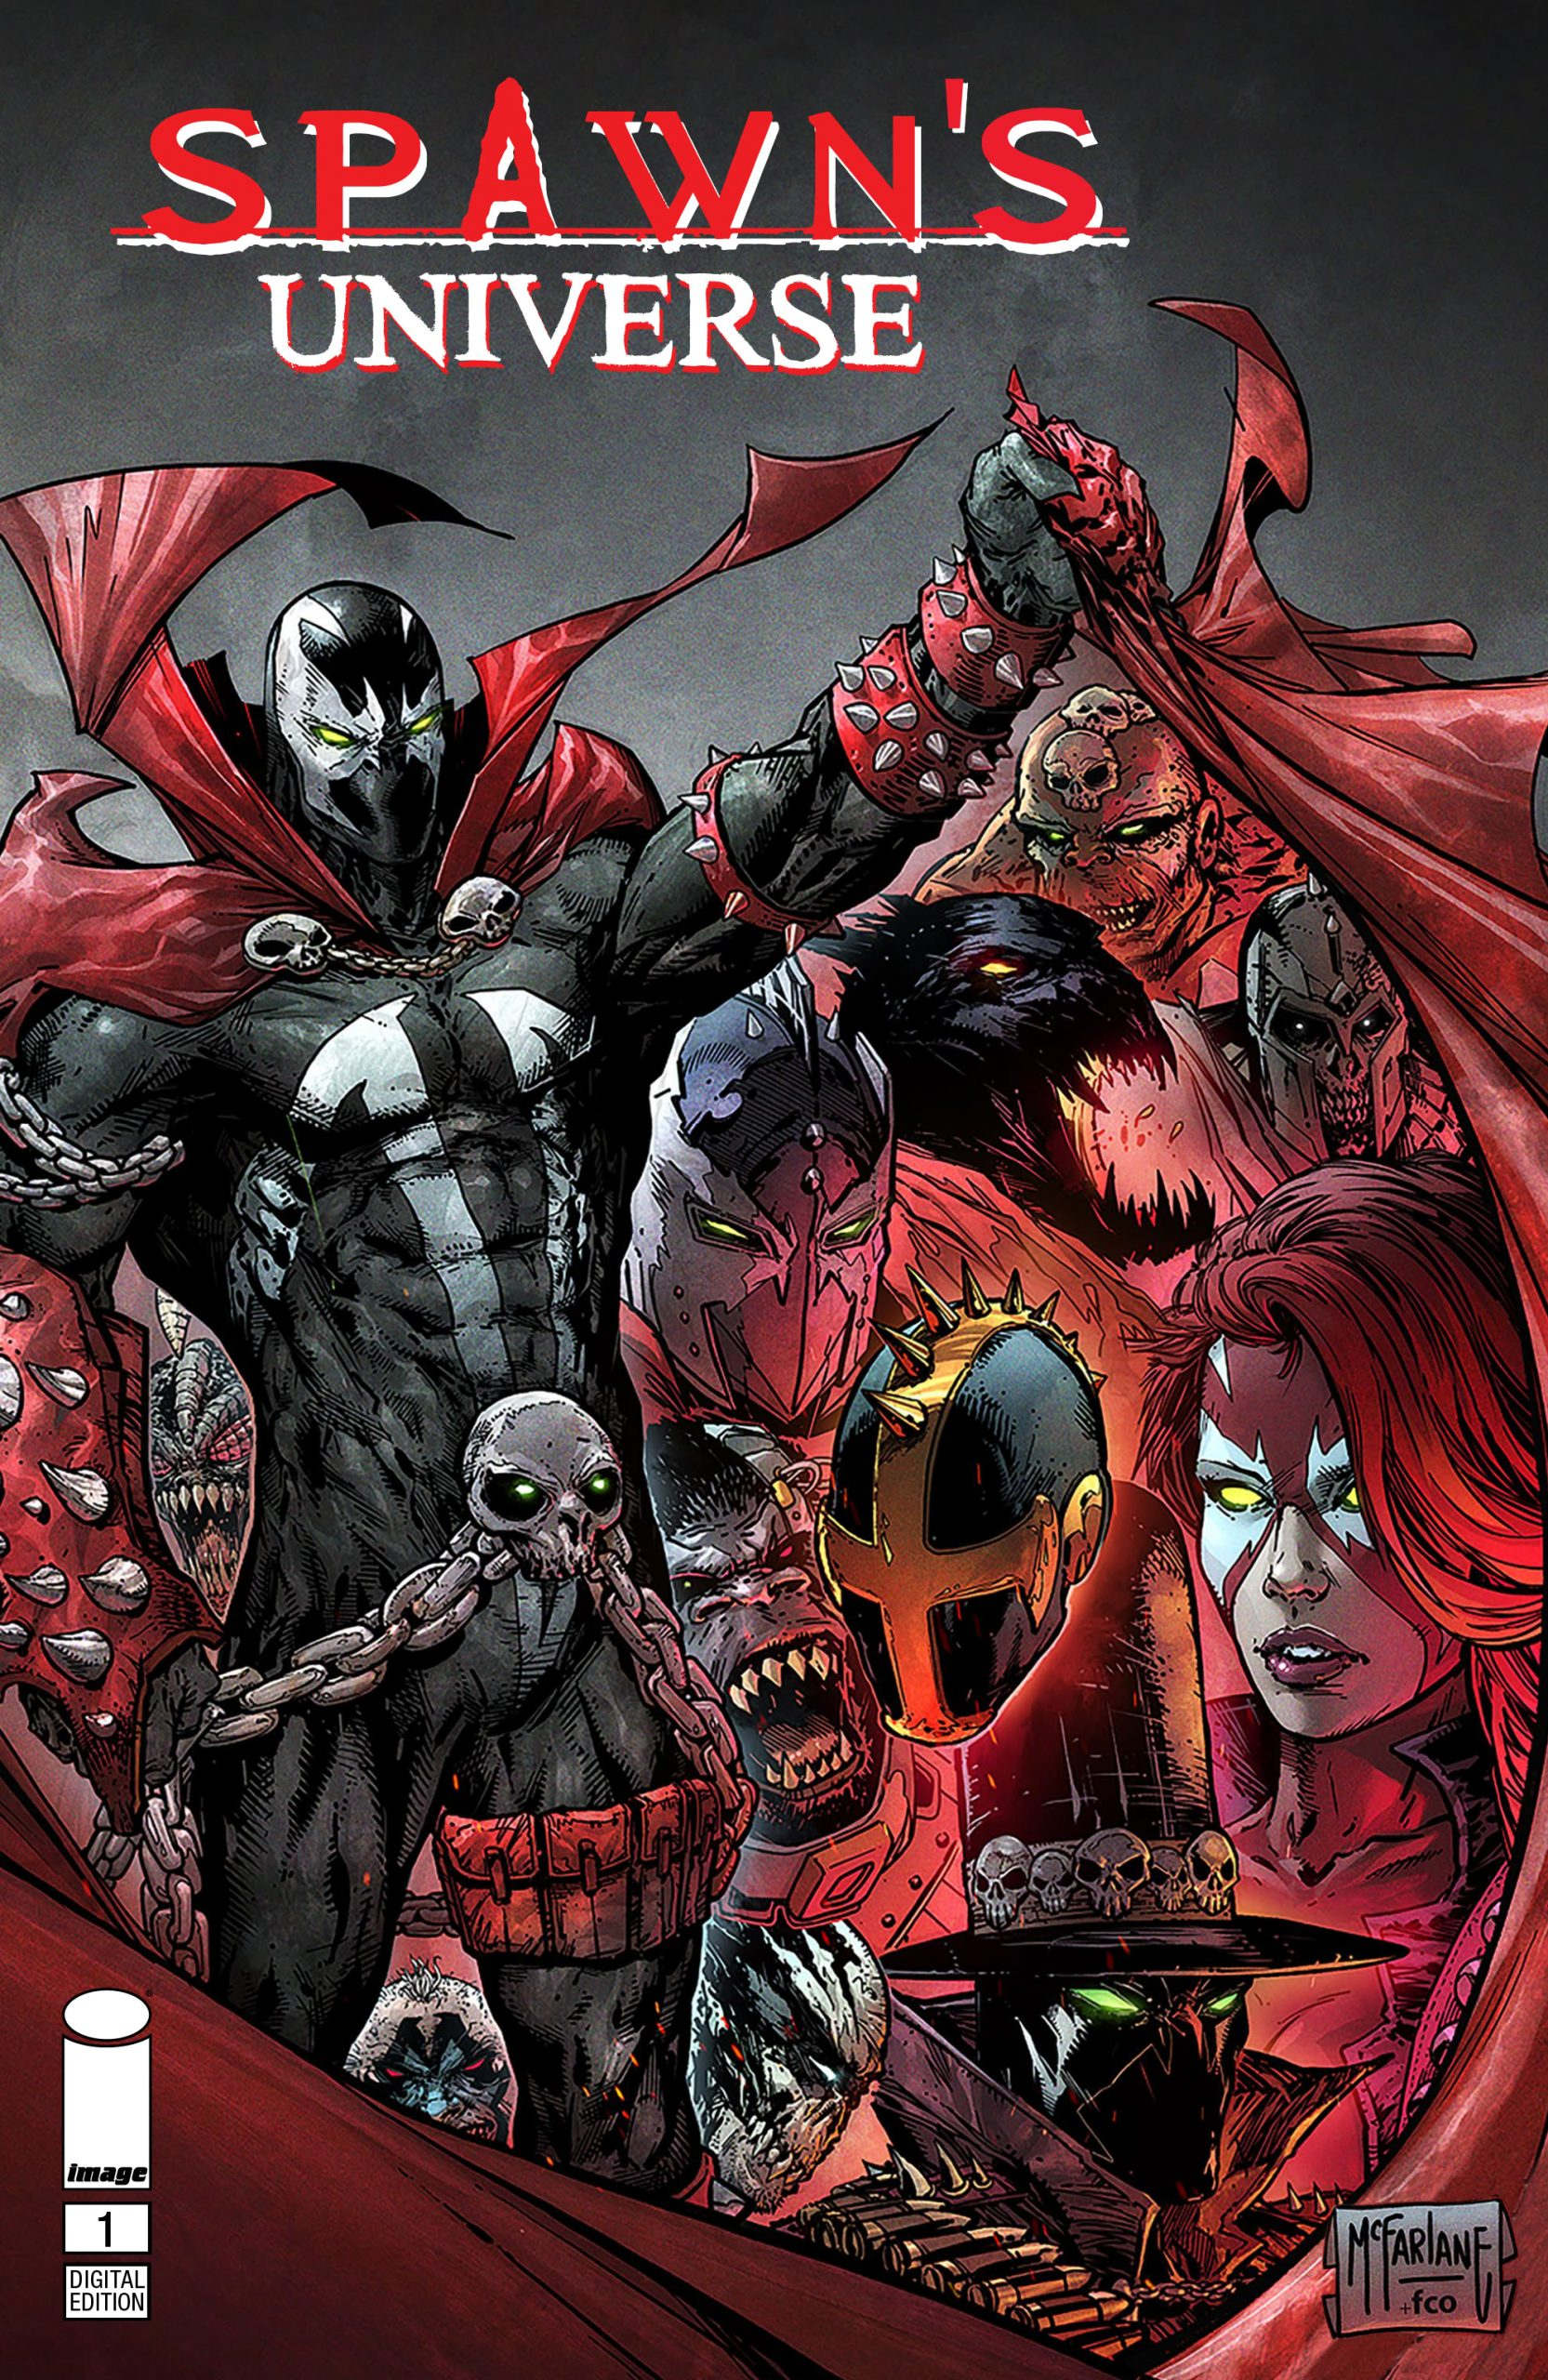 Spawns-Universe-1-spoilers-0-6-Spawn-Corps-scaled-1 Spawns-Universe-1-spoilers-0-6-Spawn-Corps-scaled-1